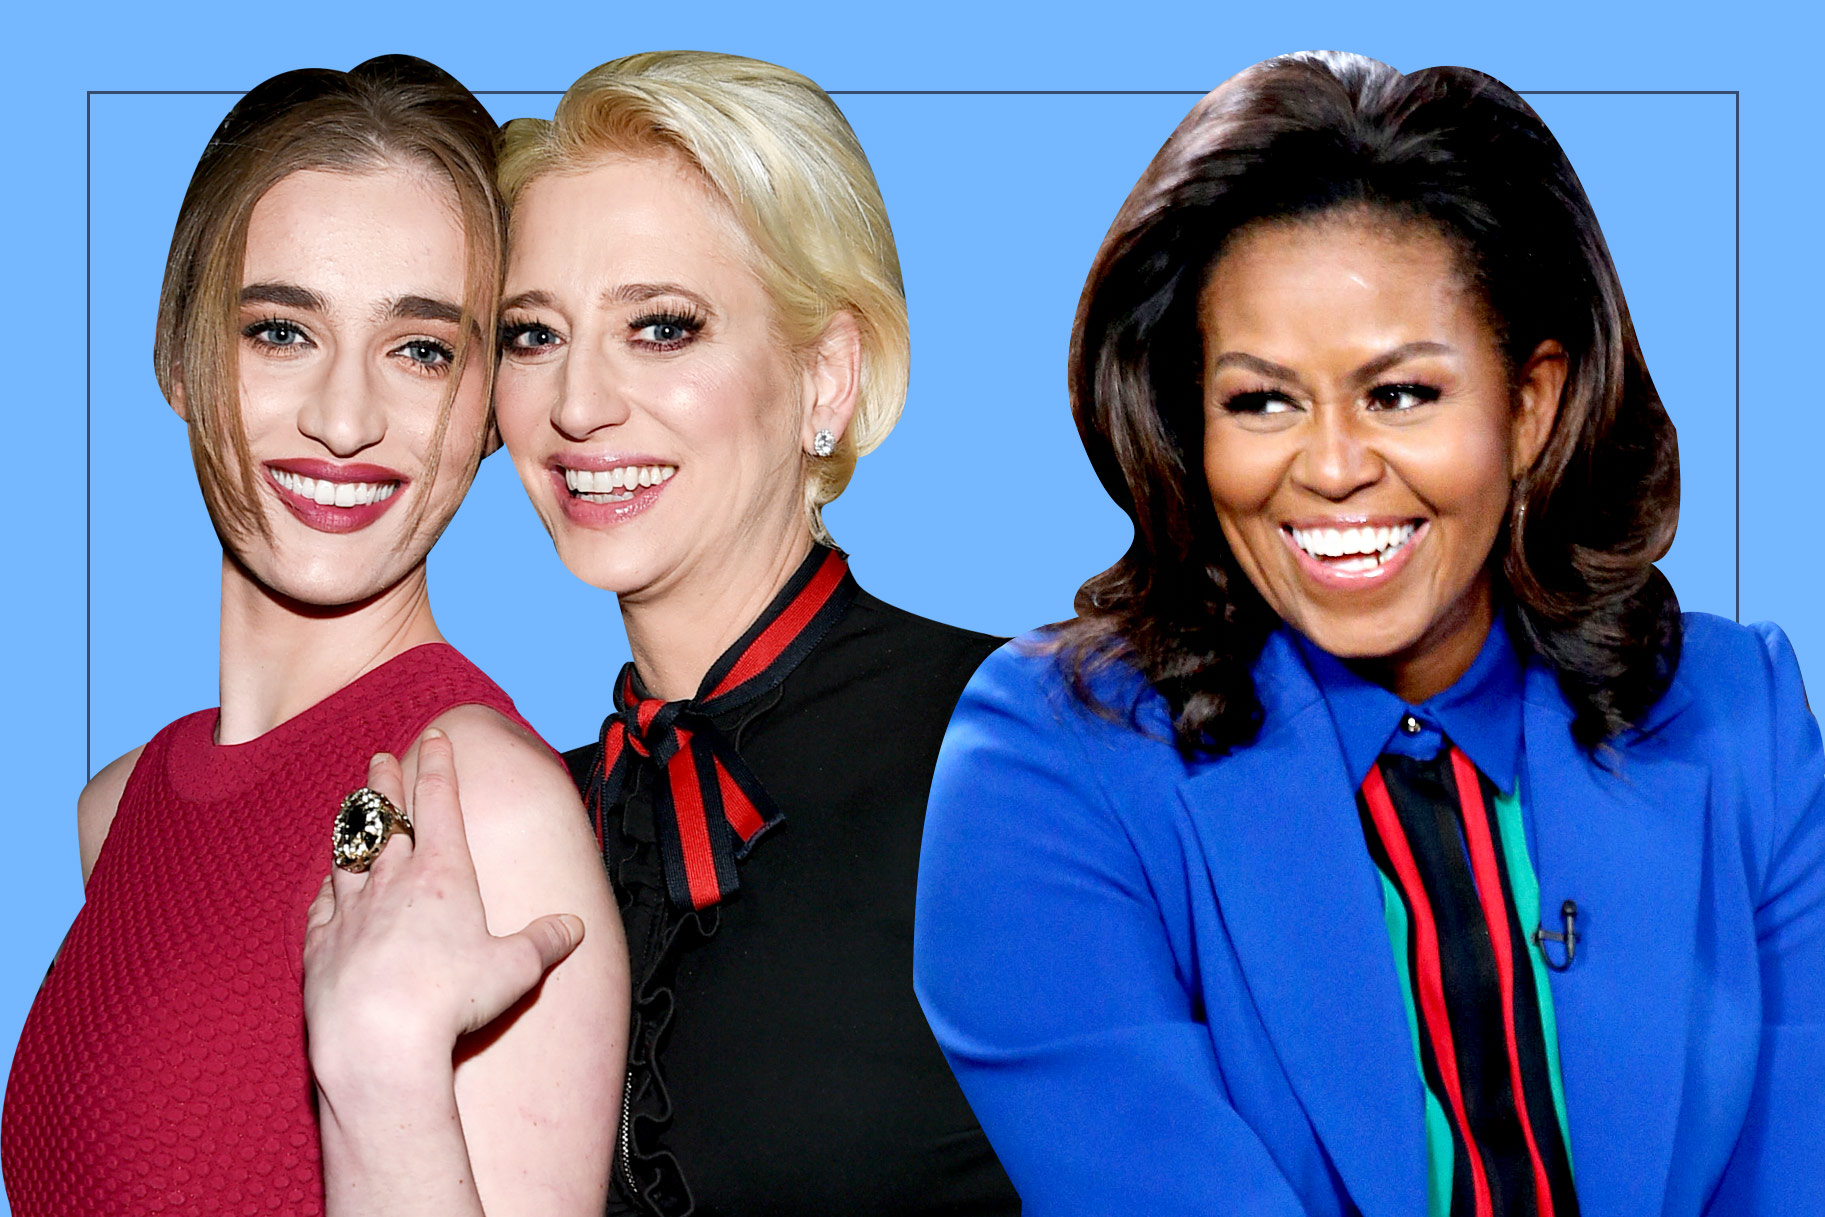 Hannah Lynch, Dorinda Medley, and Michelle Obama